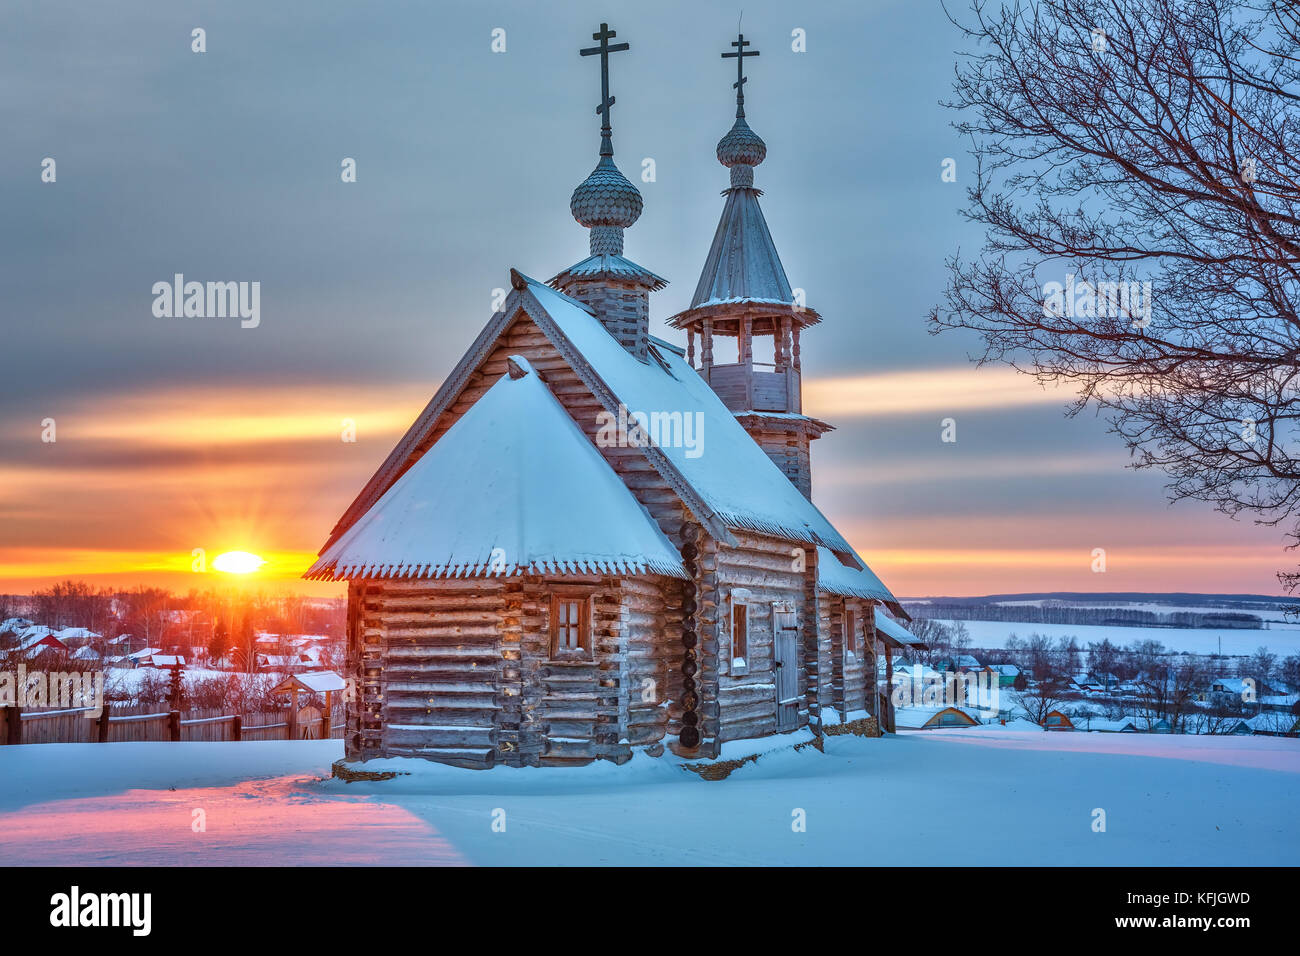 Small russian church at sunset in winter - Stock Image